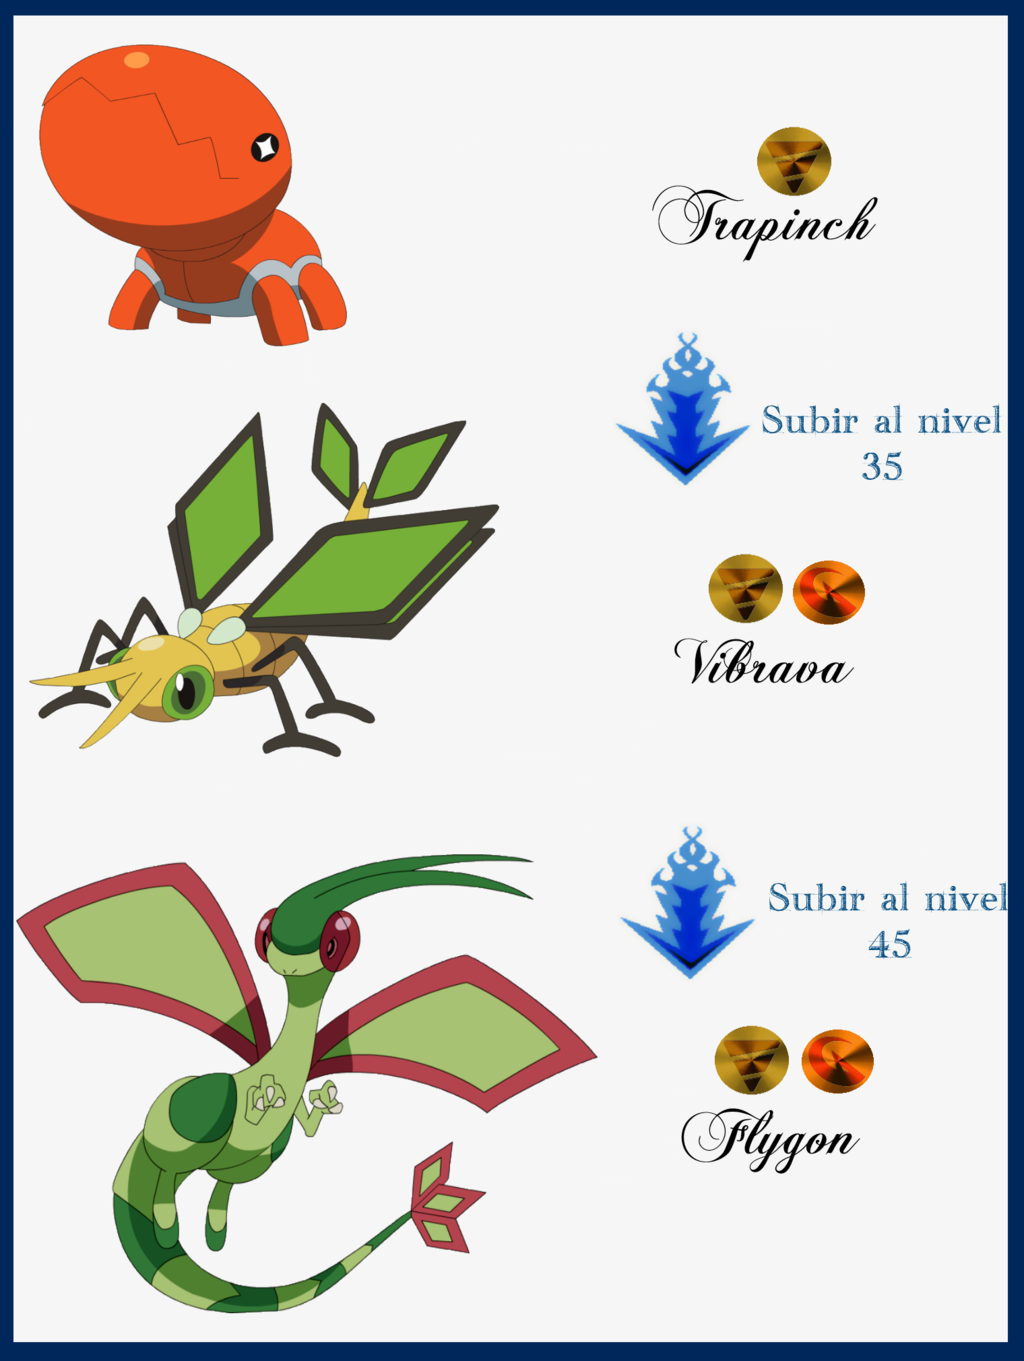 155 Trapinch Evoluciones by Maxconnery on DeviantArt